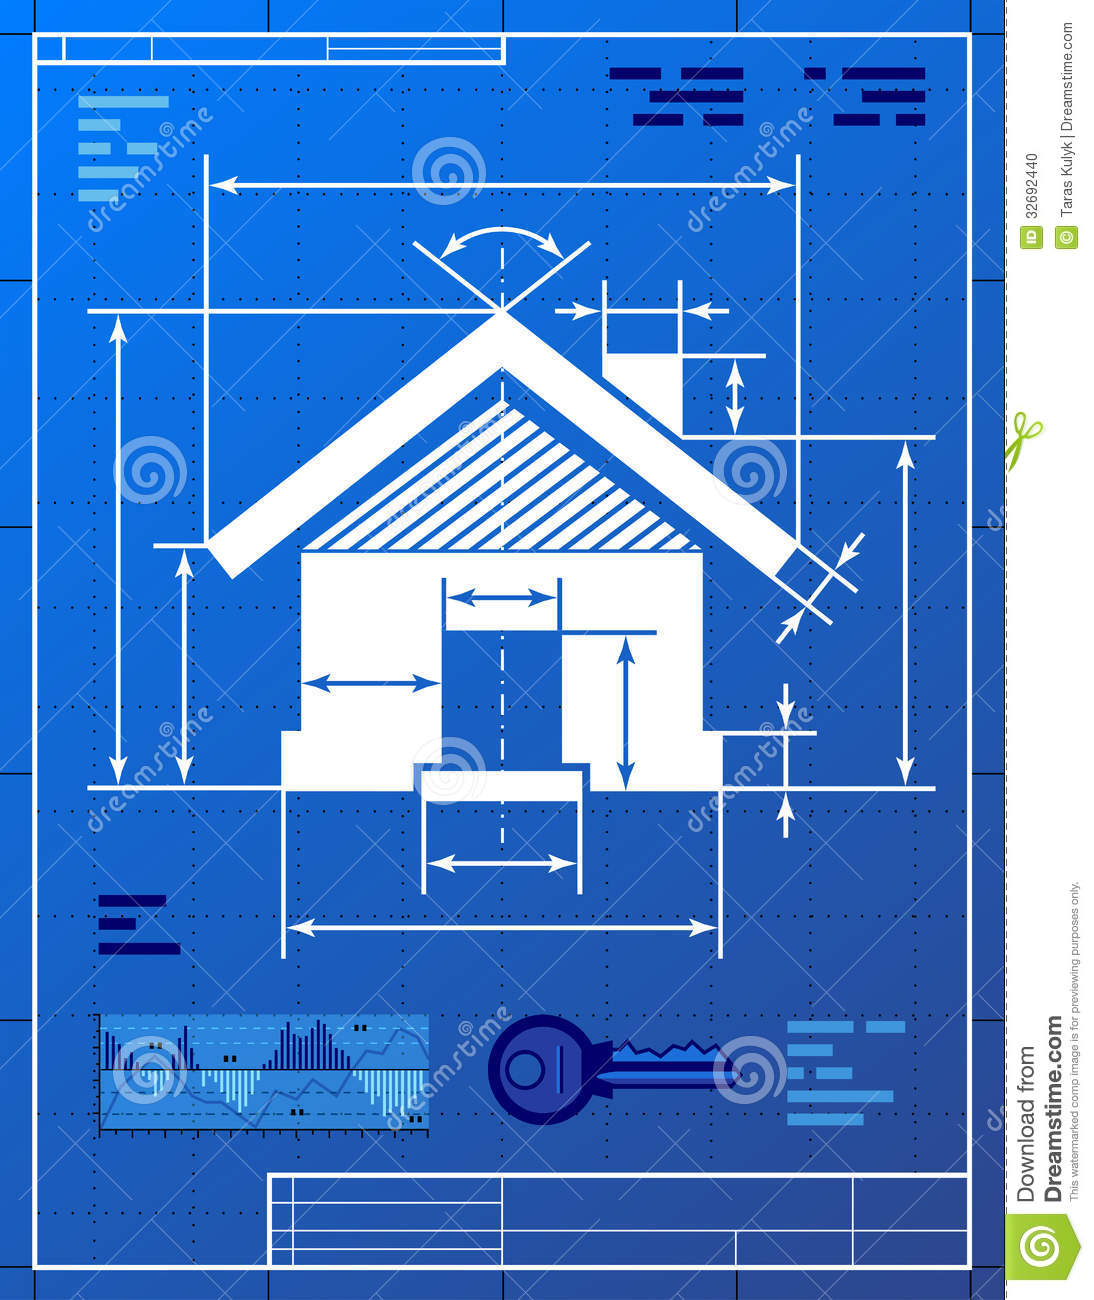 Home Symbol Like Blueprint Drawing Stock Vector